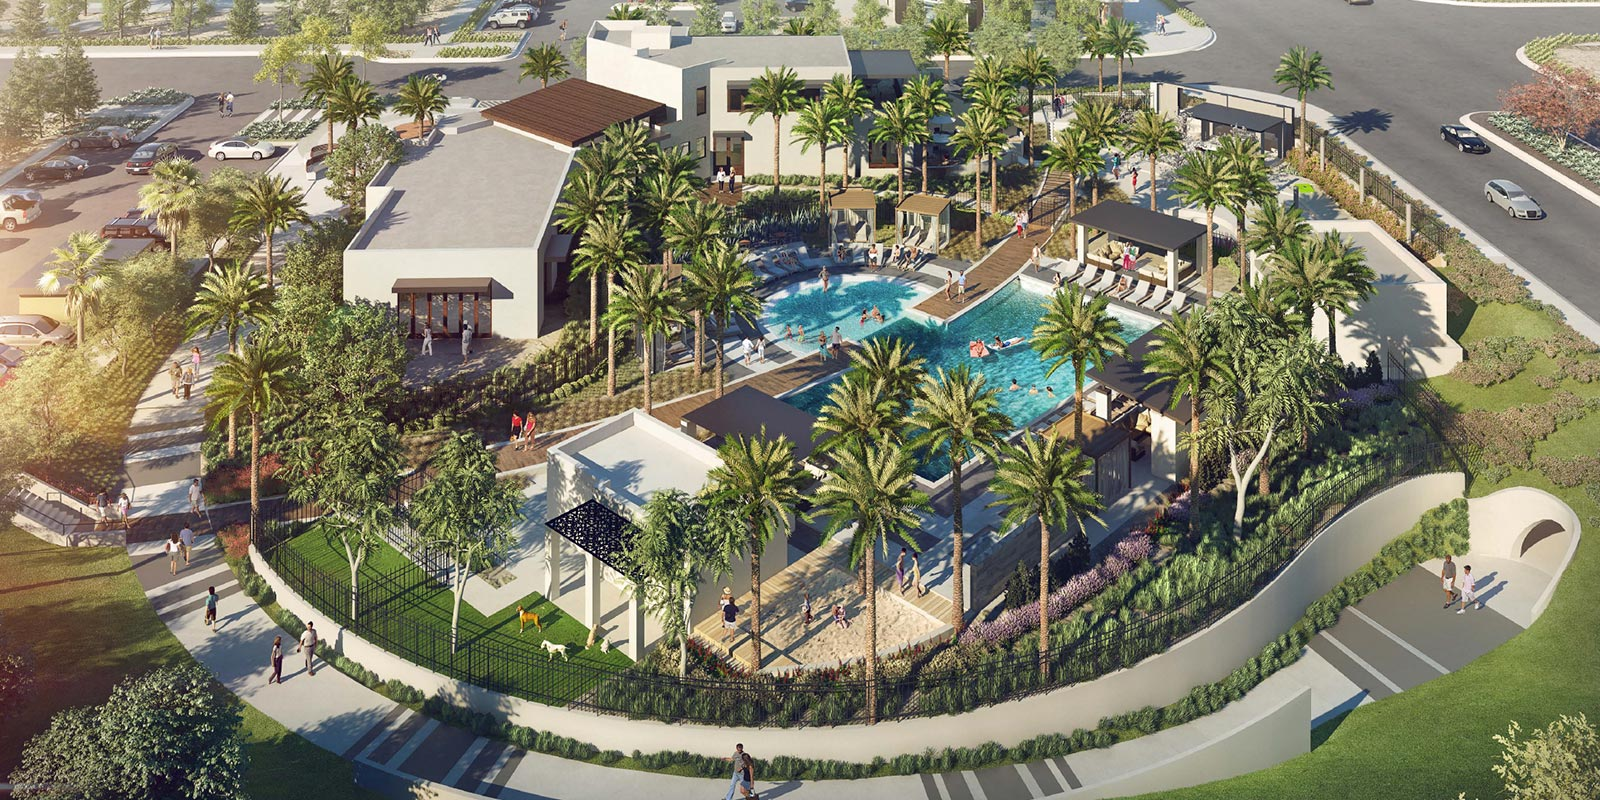 Club on 6th access for residents